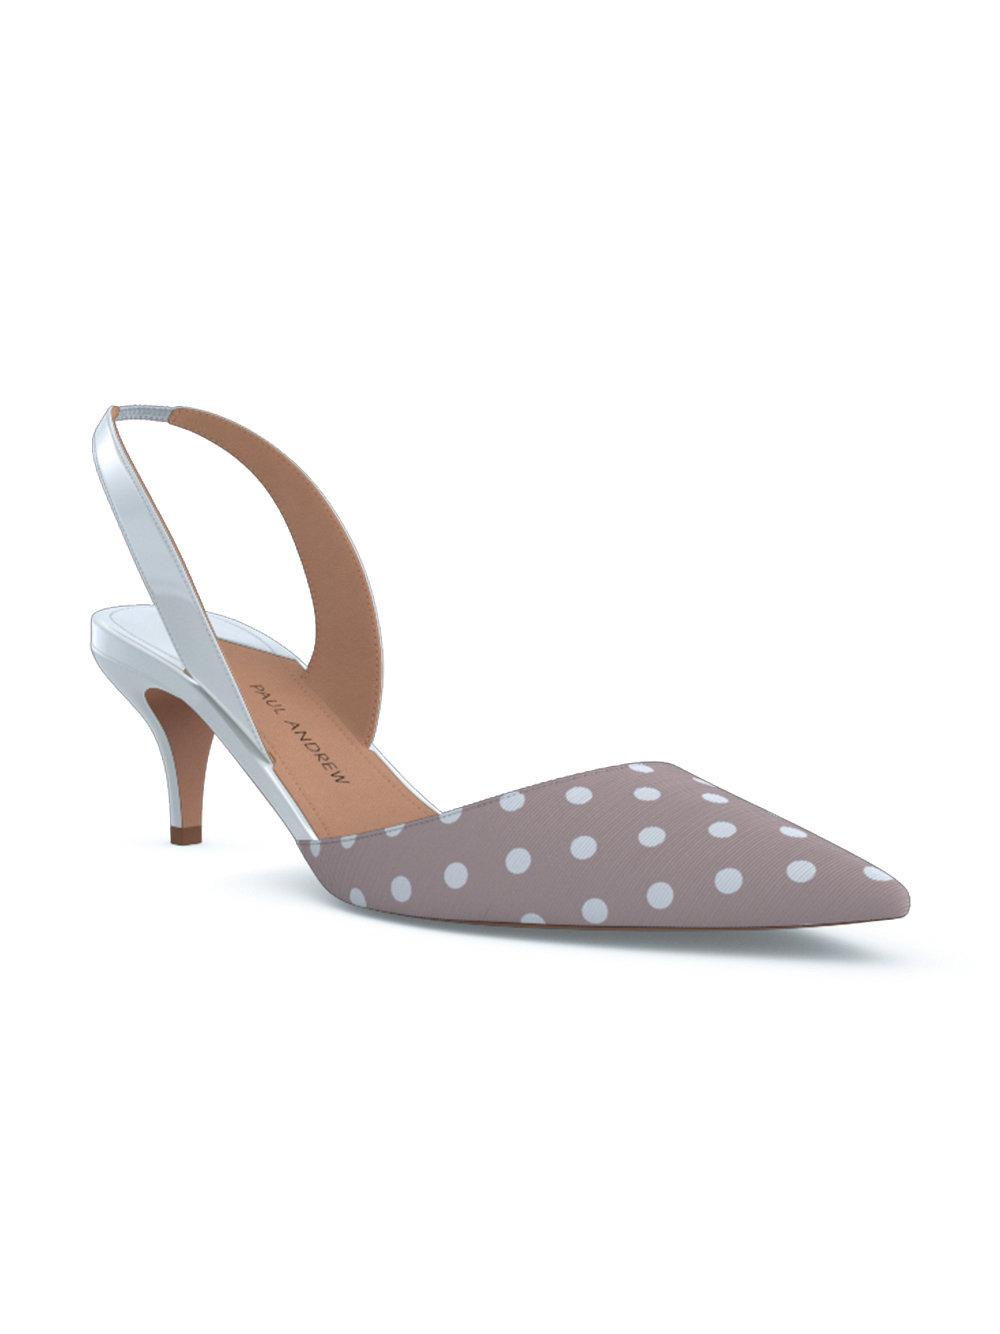 Rhea 55 pumps - Brown PAUL ANDREW CwiiLwjN